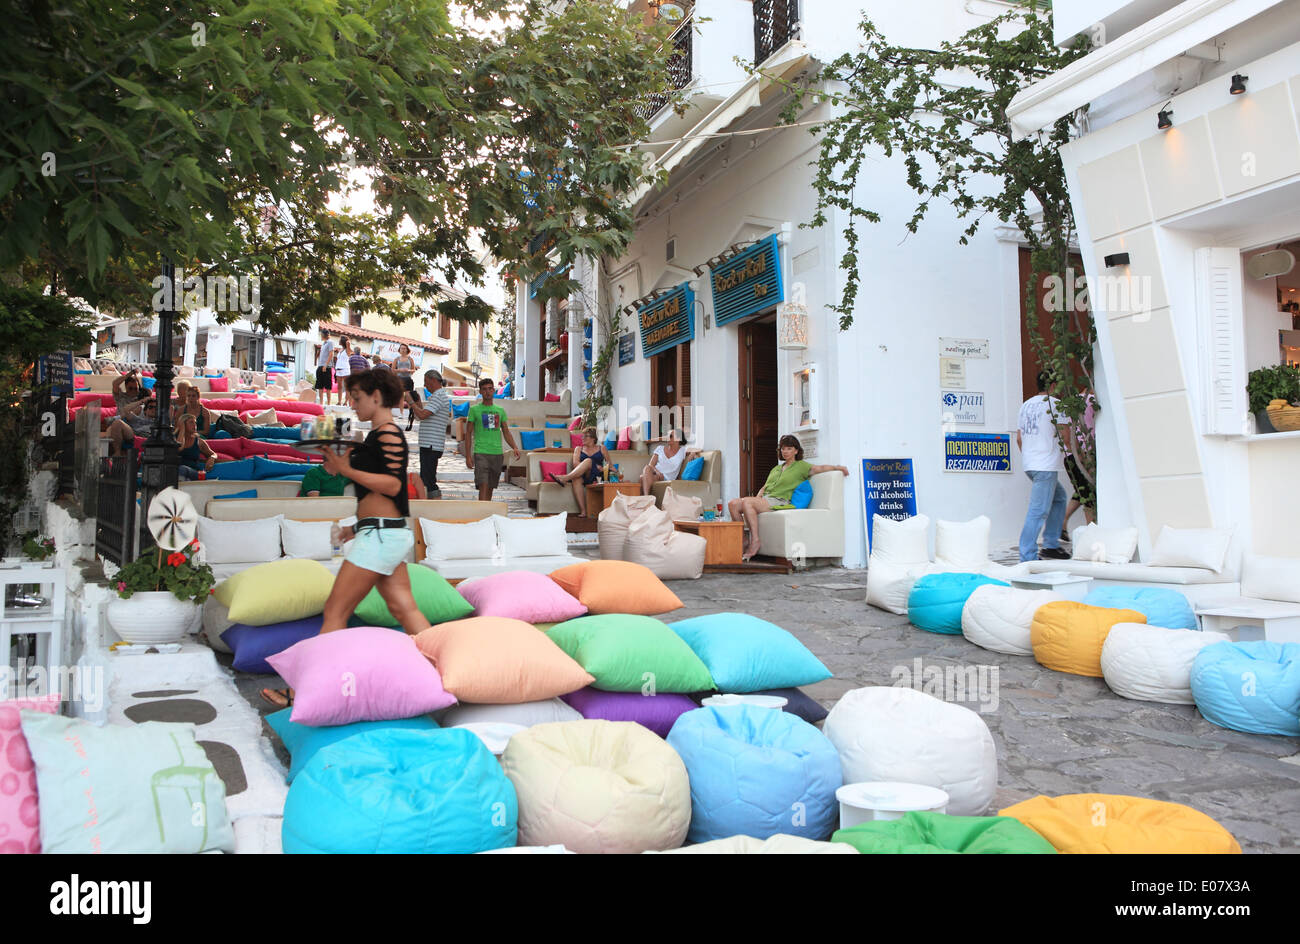 Gallery images and information kos greece nightlife - A Trendy Bar In Skiathos Town In The Early Evening In Skiathos In The Northern